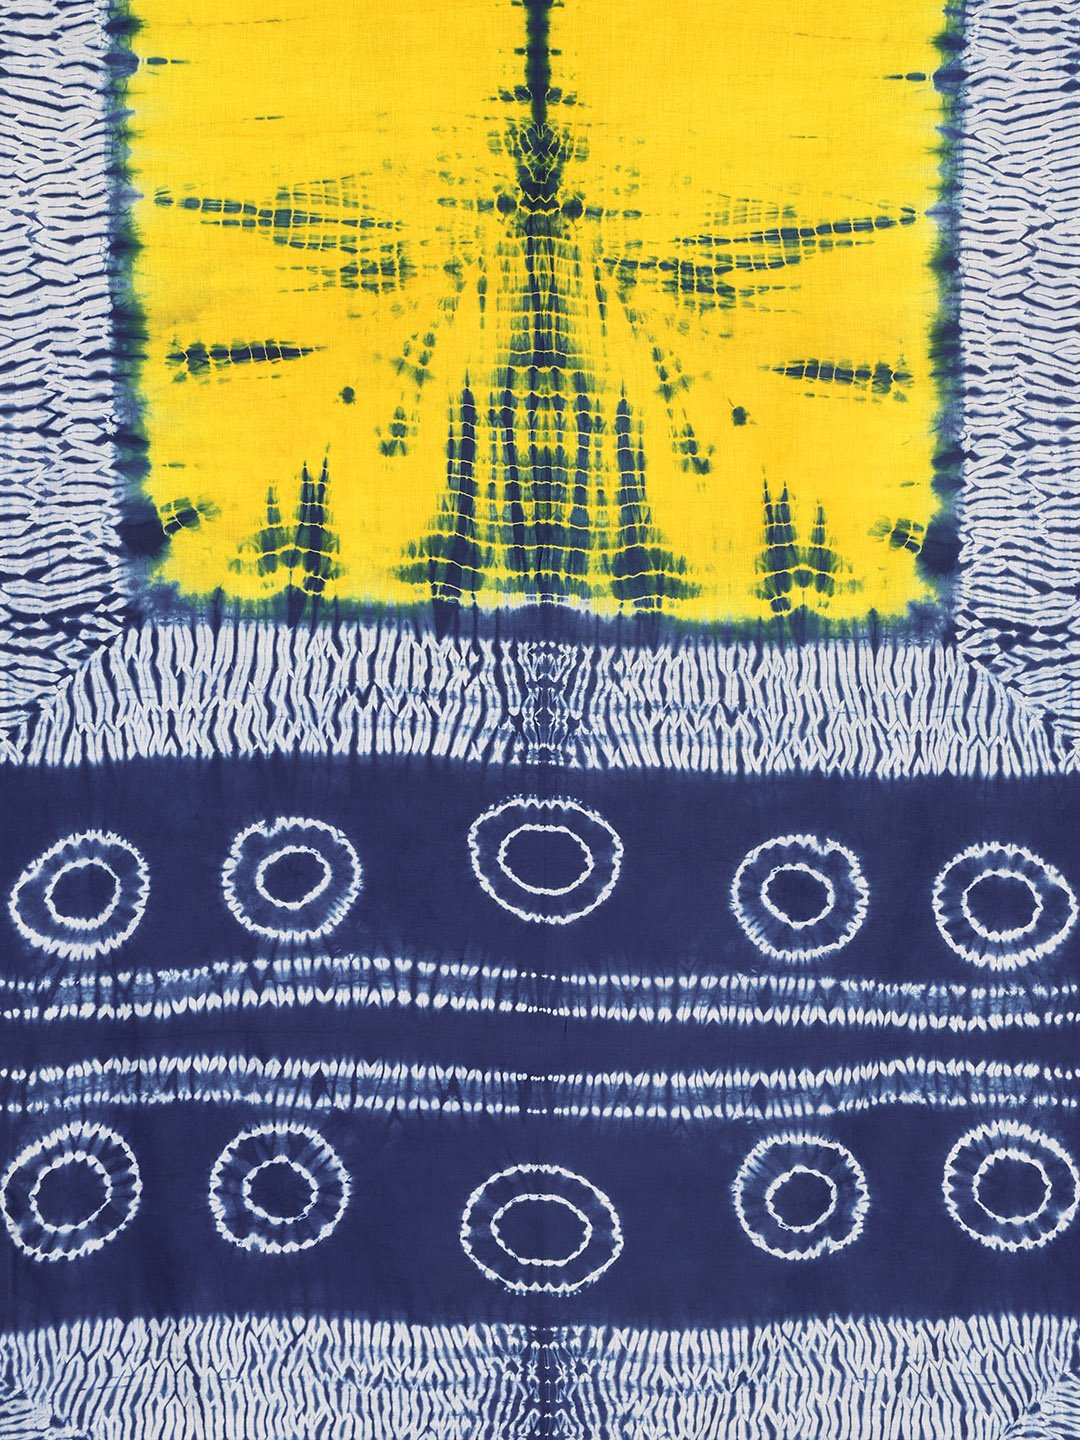 Yellow & Navy Blue Shibori Tie & Dyed Handcrafted Cotton Saree-Saree-Kalakari India-BHKPSA0034-Cotton, Geographical Indication, Hand Blocks, Hand Crafted, Heritage Prints, Sarees, Shibori, Sustainable Fabrics-[Linen,Ethnic,wear,Fashionista,Handloom,Handicraft,Indigo,blockprint,block,print,Cotton,Chanderi,Blue, latest,classy,party,bollywood,trendy,summer,style,traditional,formal,elegant,unique,style,hand,block,print, dabu,booti,gift,present,glamorous,affordable,collectible,Sari,Saree,printed, hol